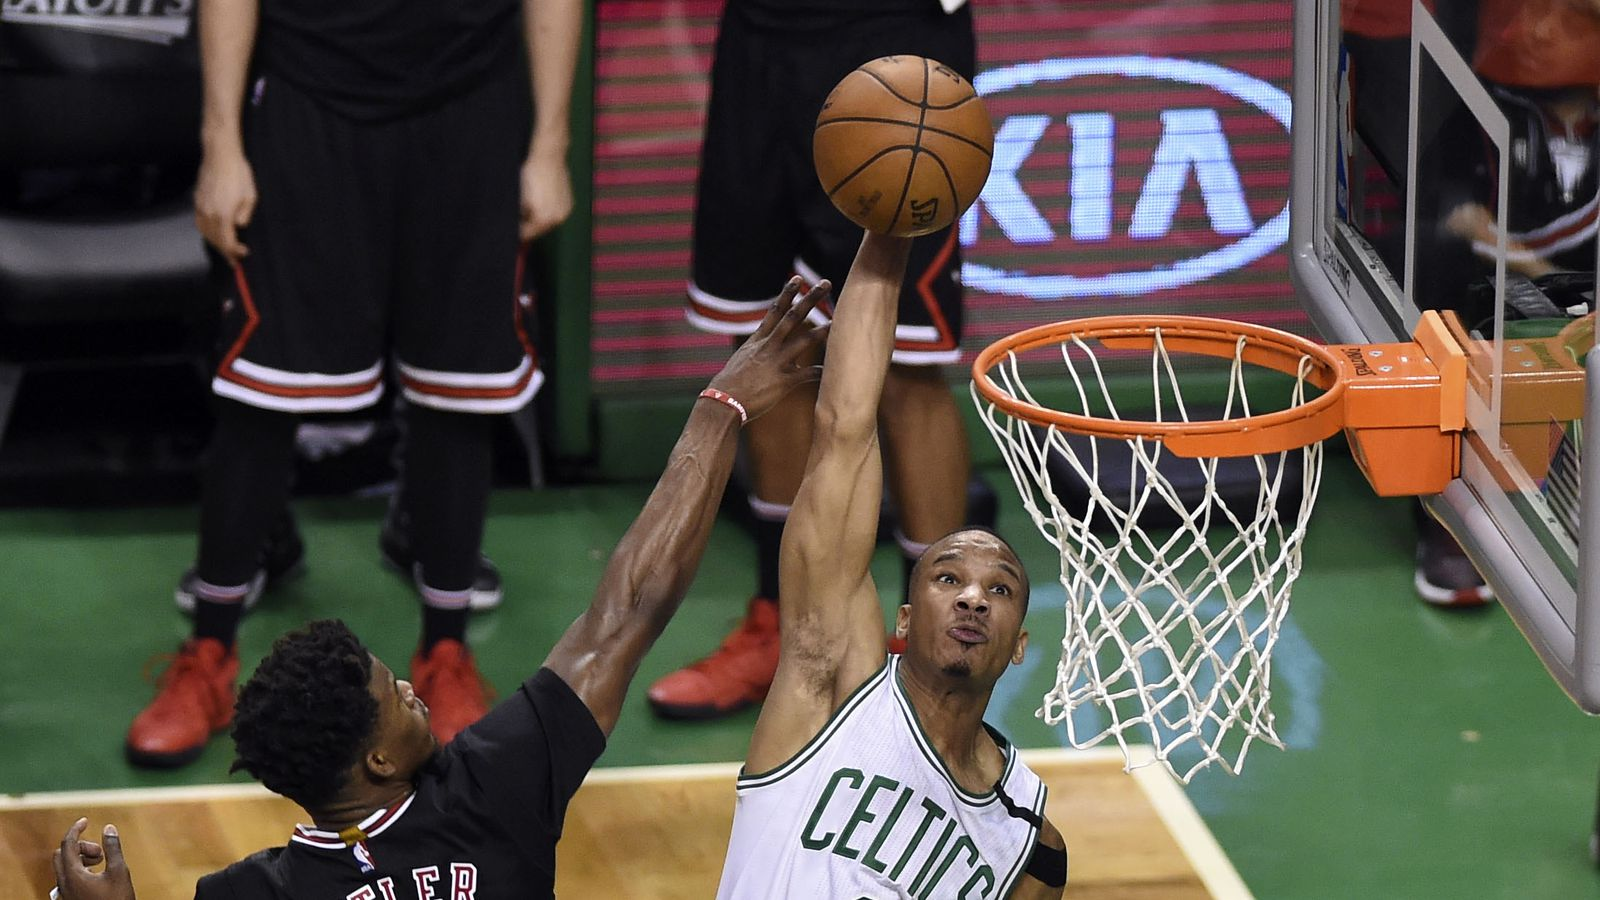 The Celtics are back to doing what they were supposed to do: beating the Bulls